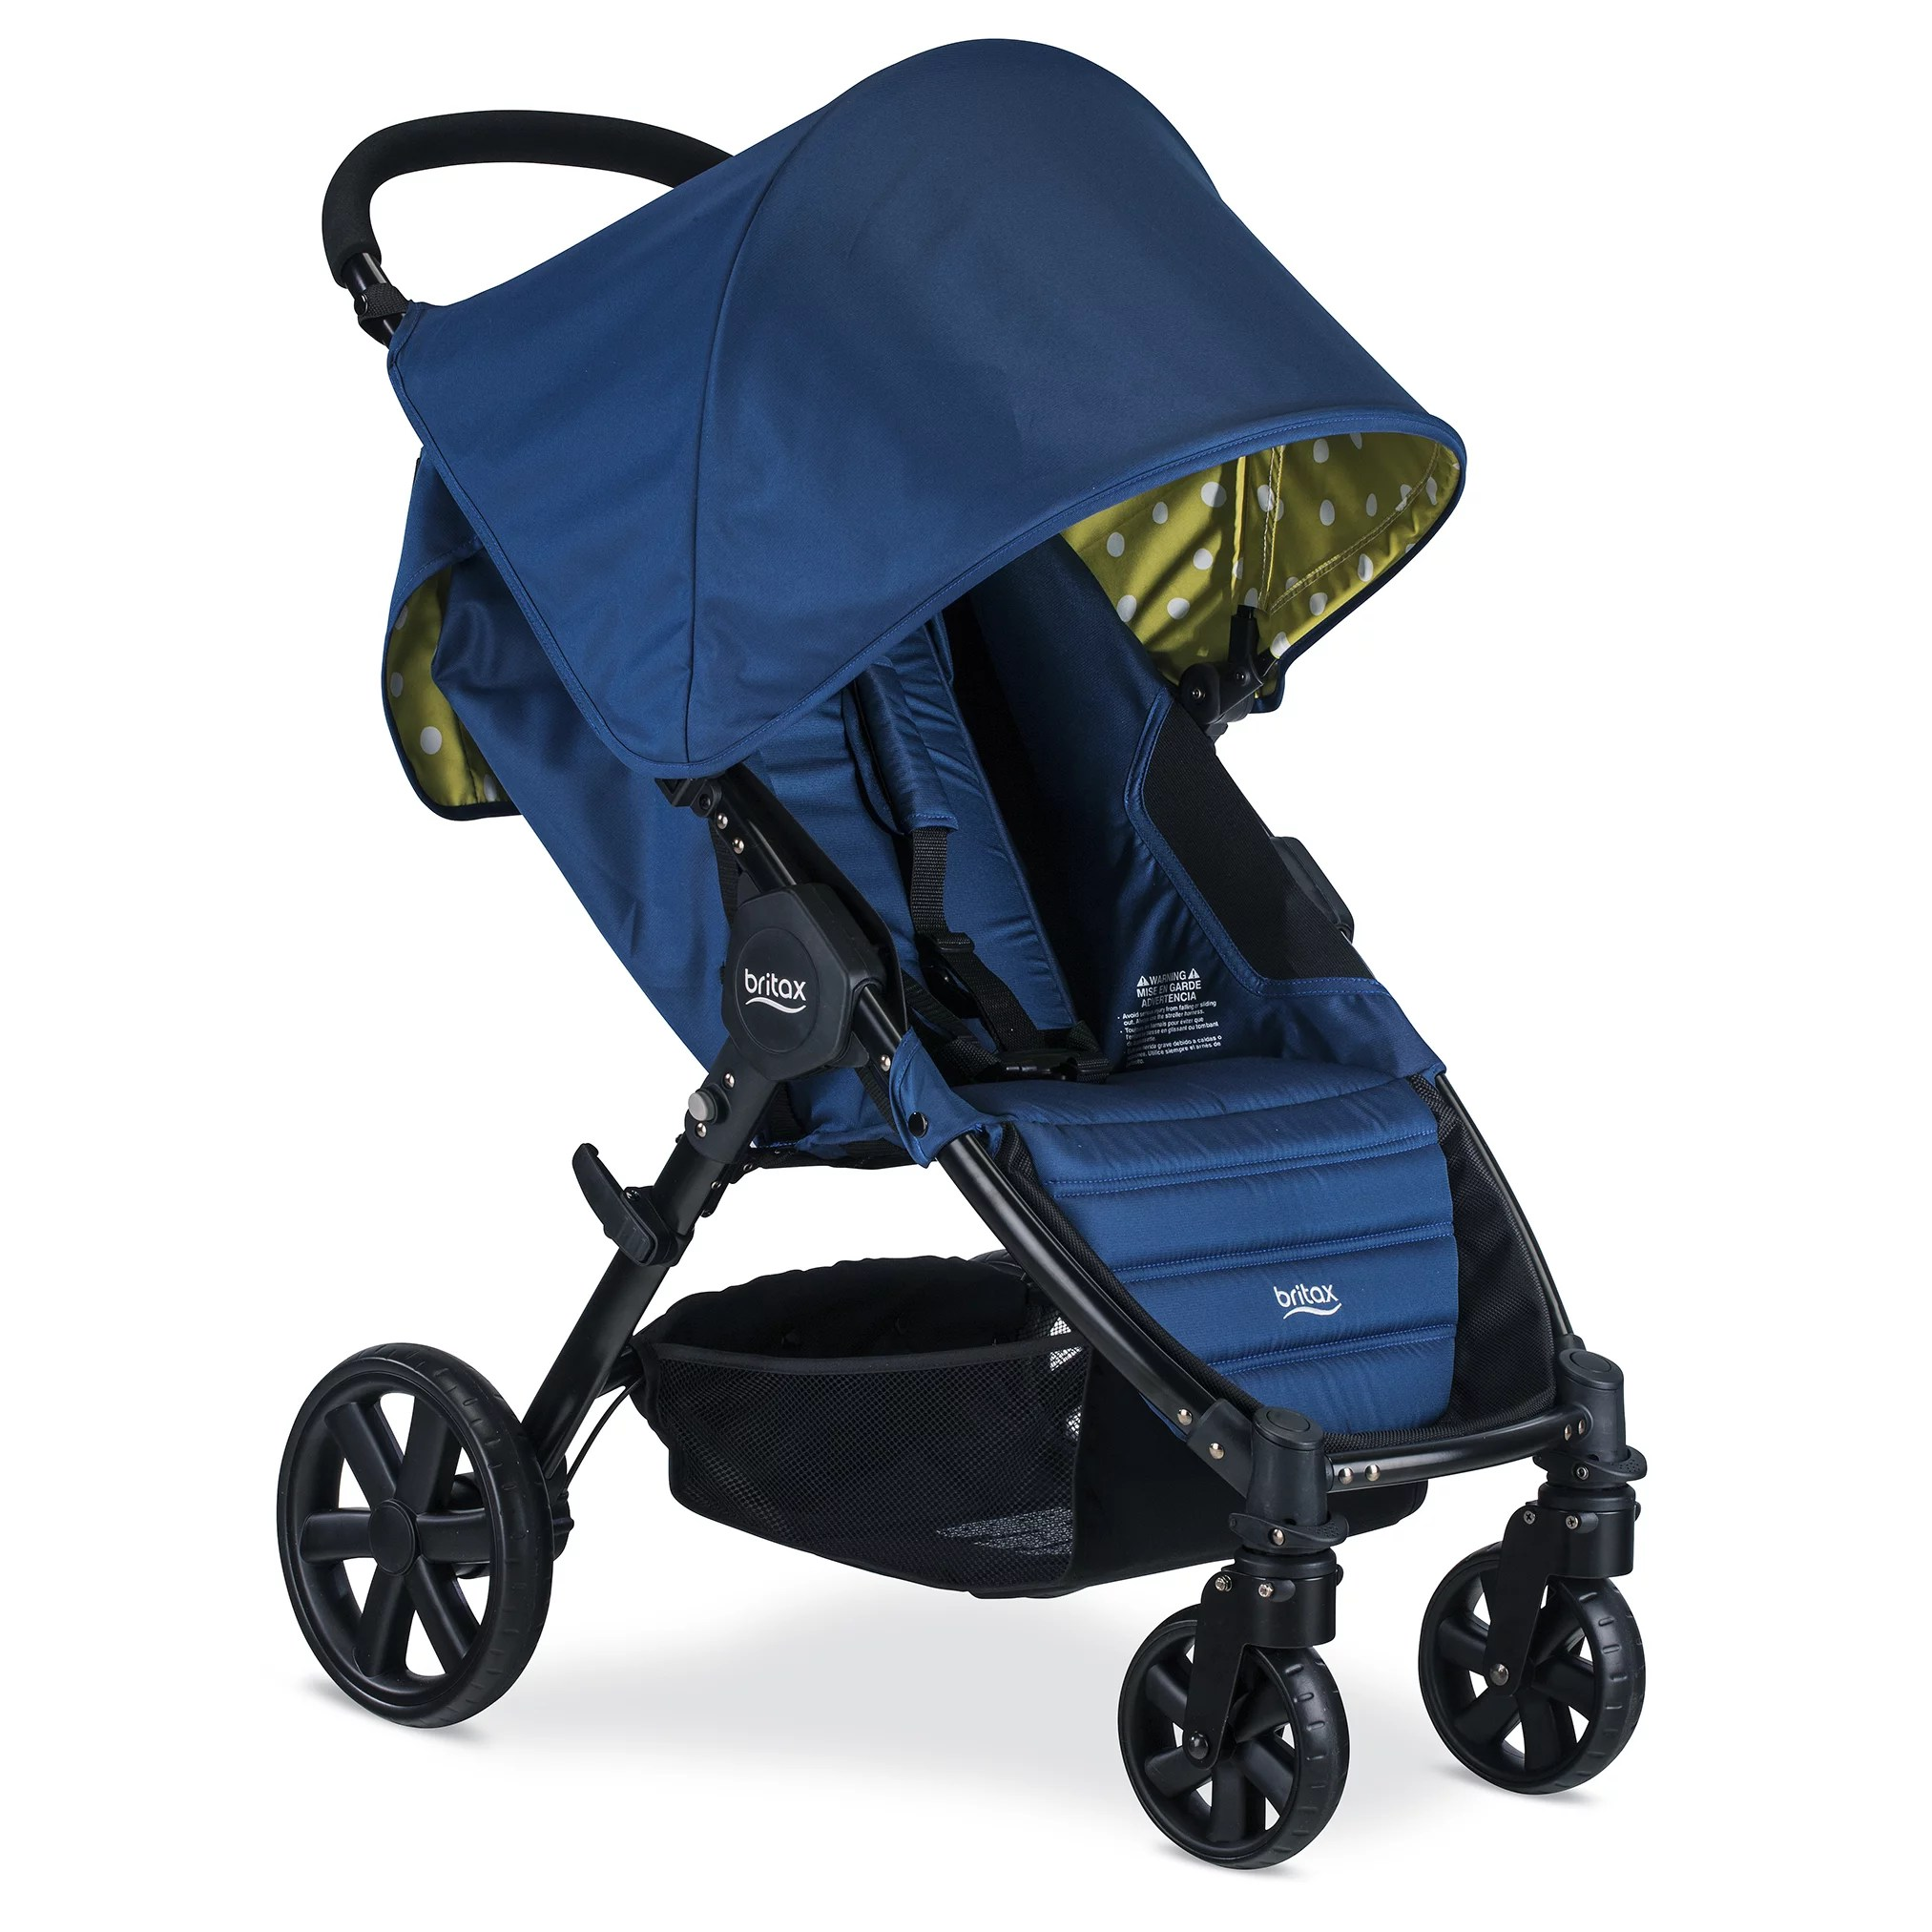 Babyone Baby Jogger Details About Britax Pathway Stroller Newborn Infant Baby One Hand Quick Fold Pushchair Kids